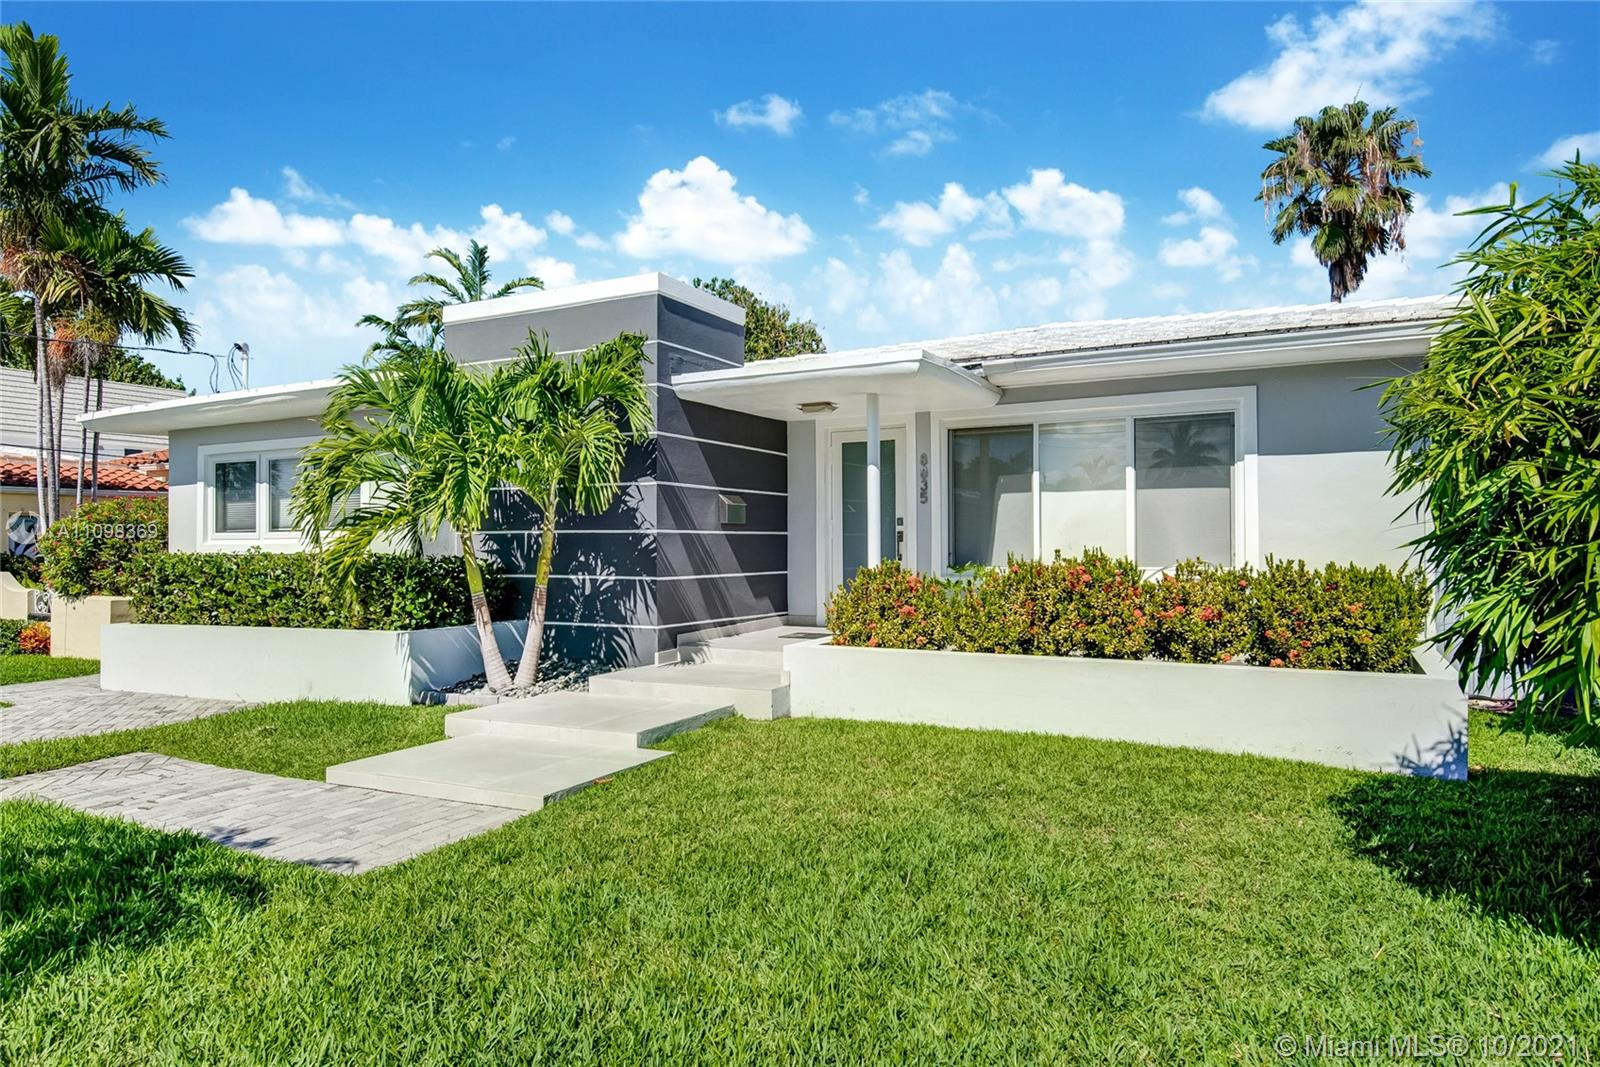 8835 Carlyle Ave, Surfside, Florida 33154